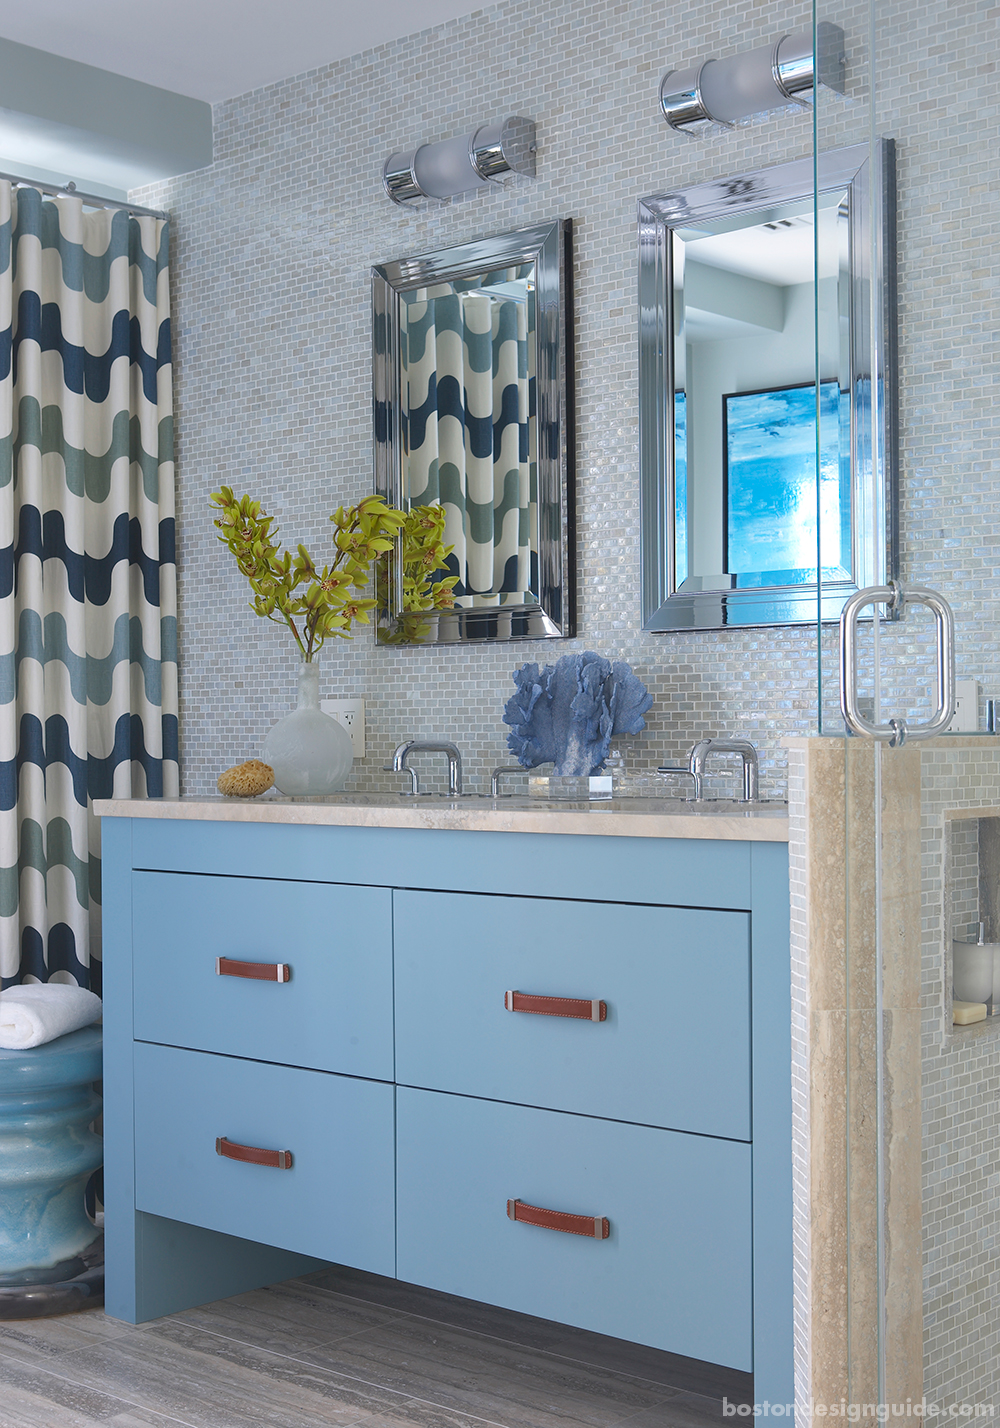 high-end bathroom design trends